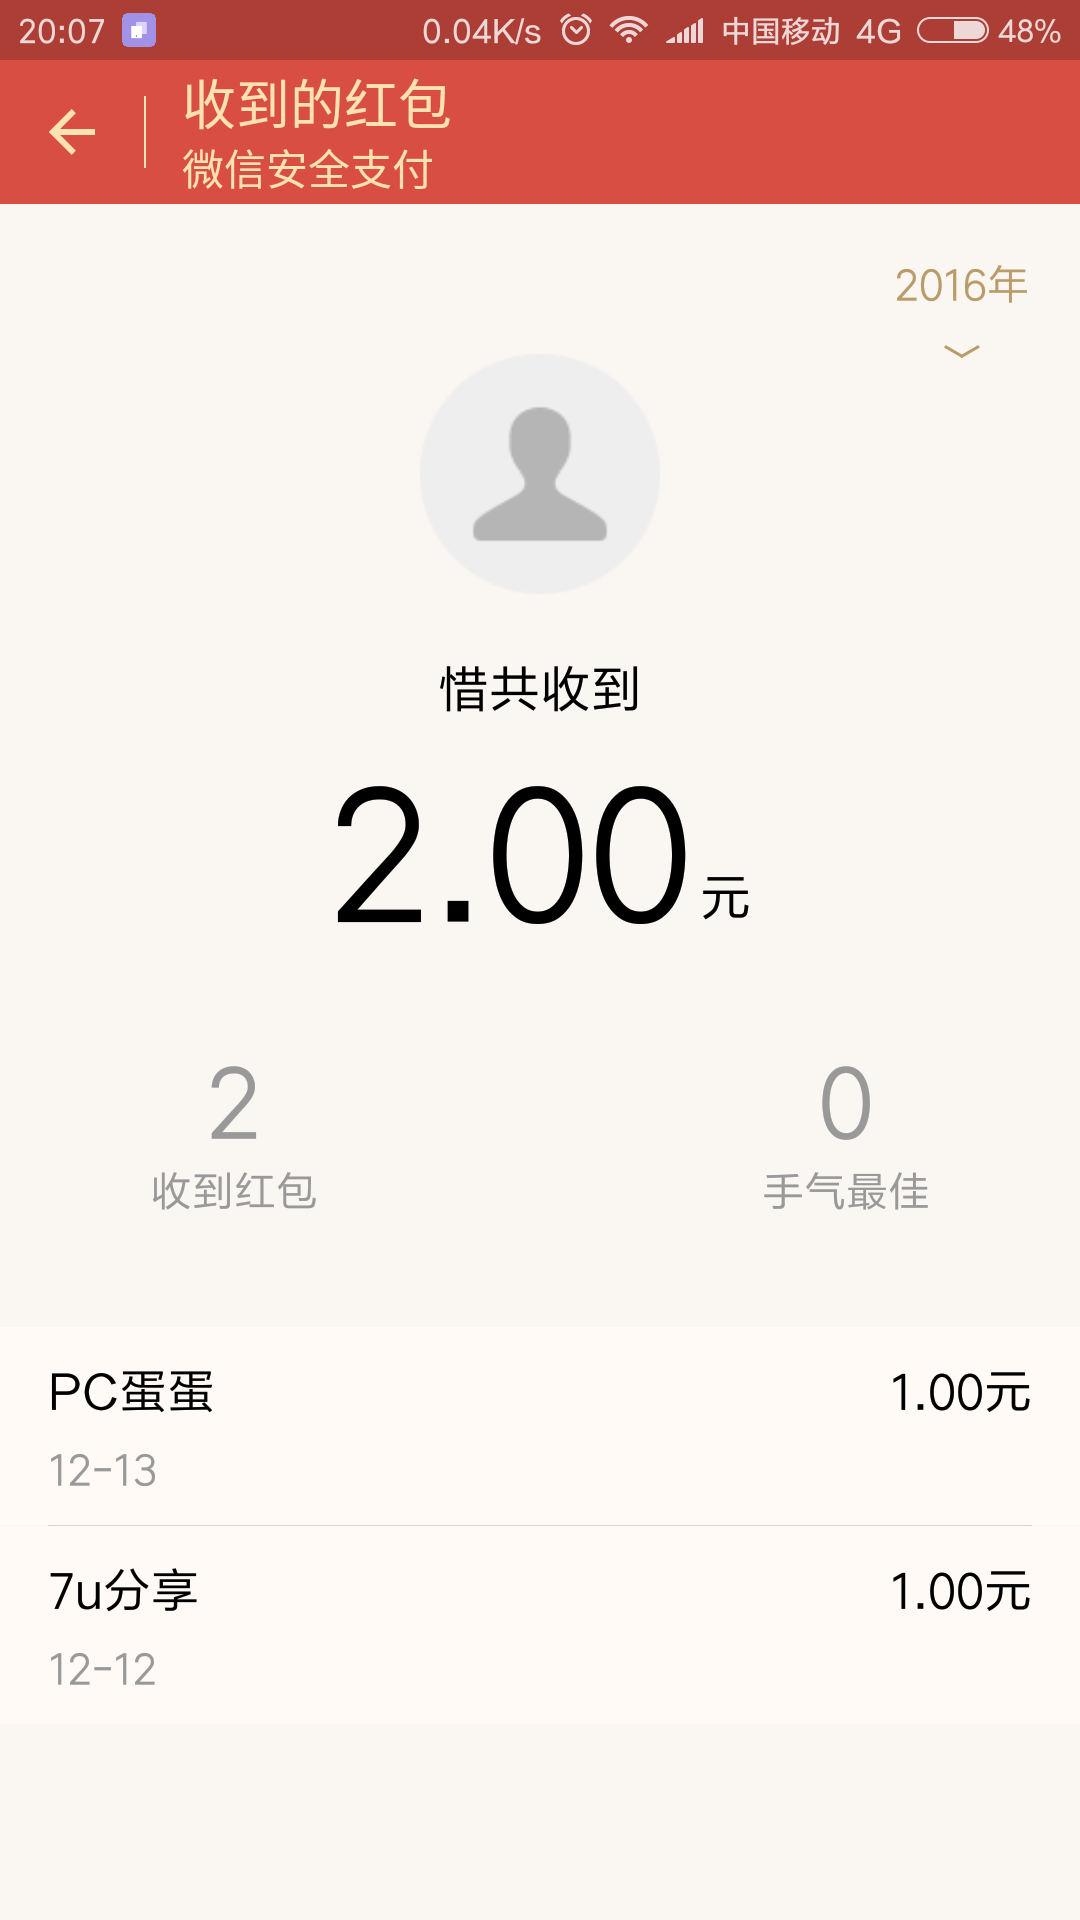 Screenshot_2016-12-13-20-07-51-554_com.tencent.mm.png